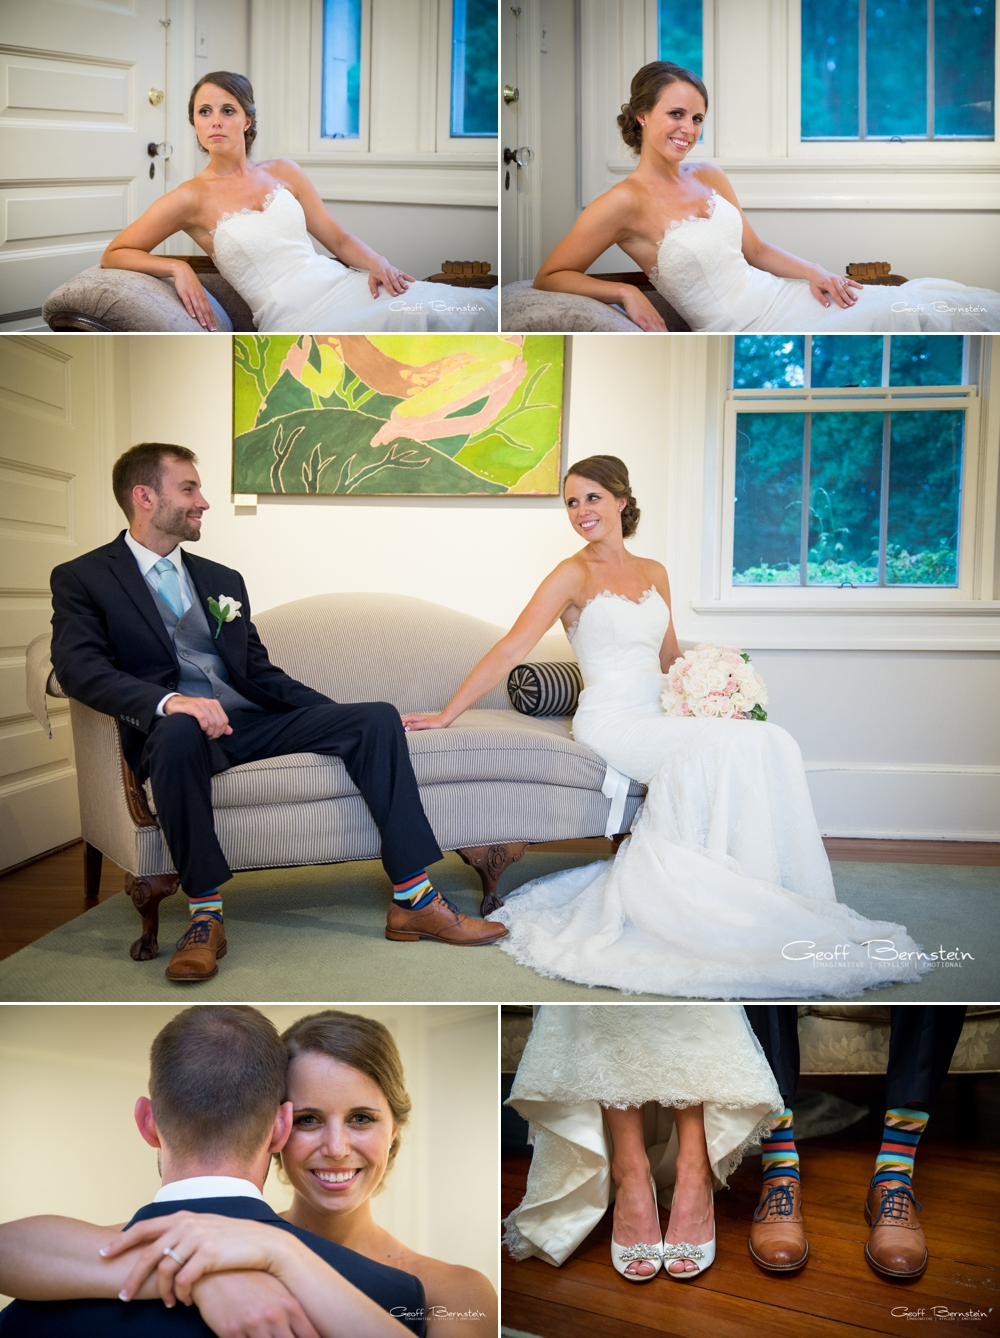 Baughman Wedding Collage 6.jpg